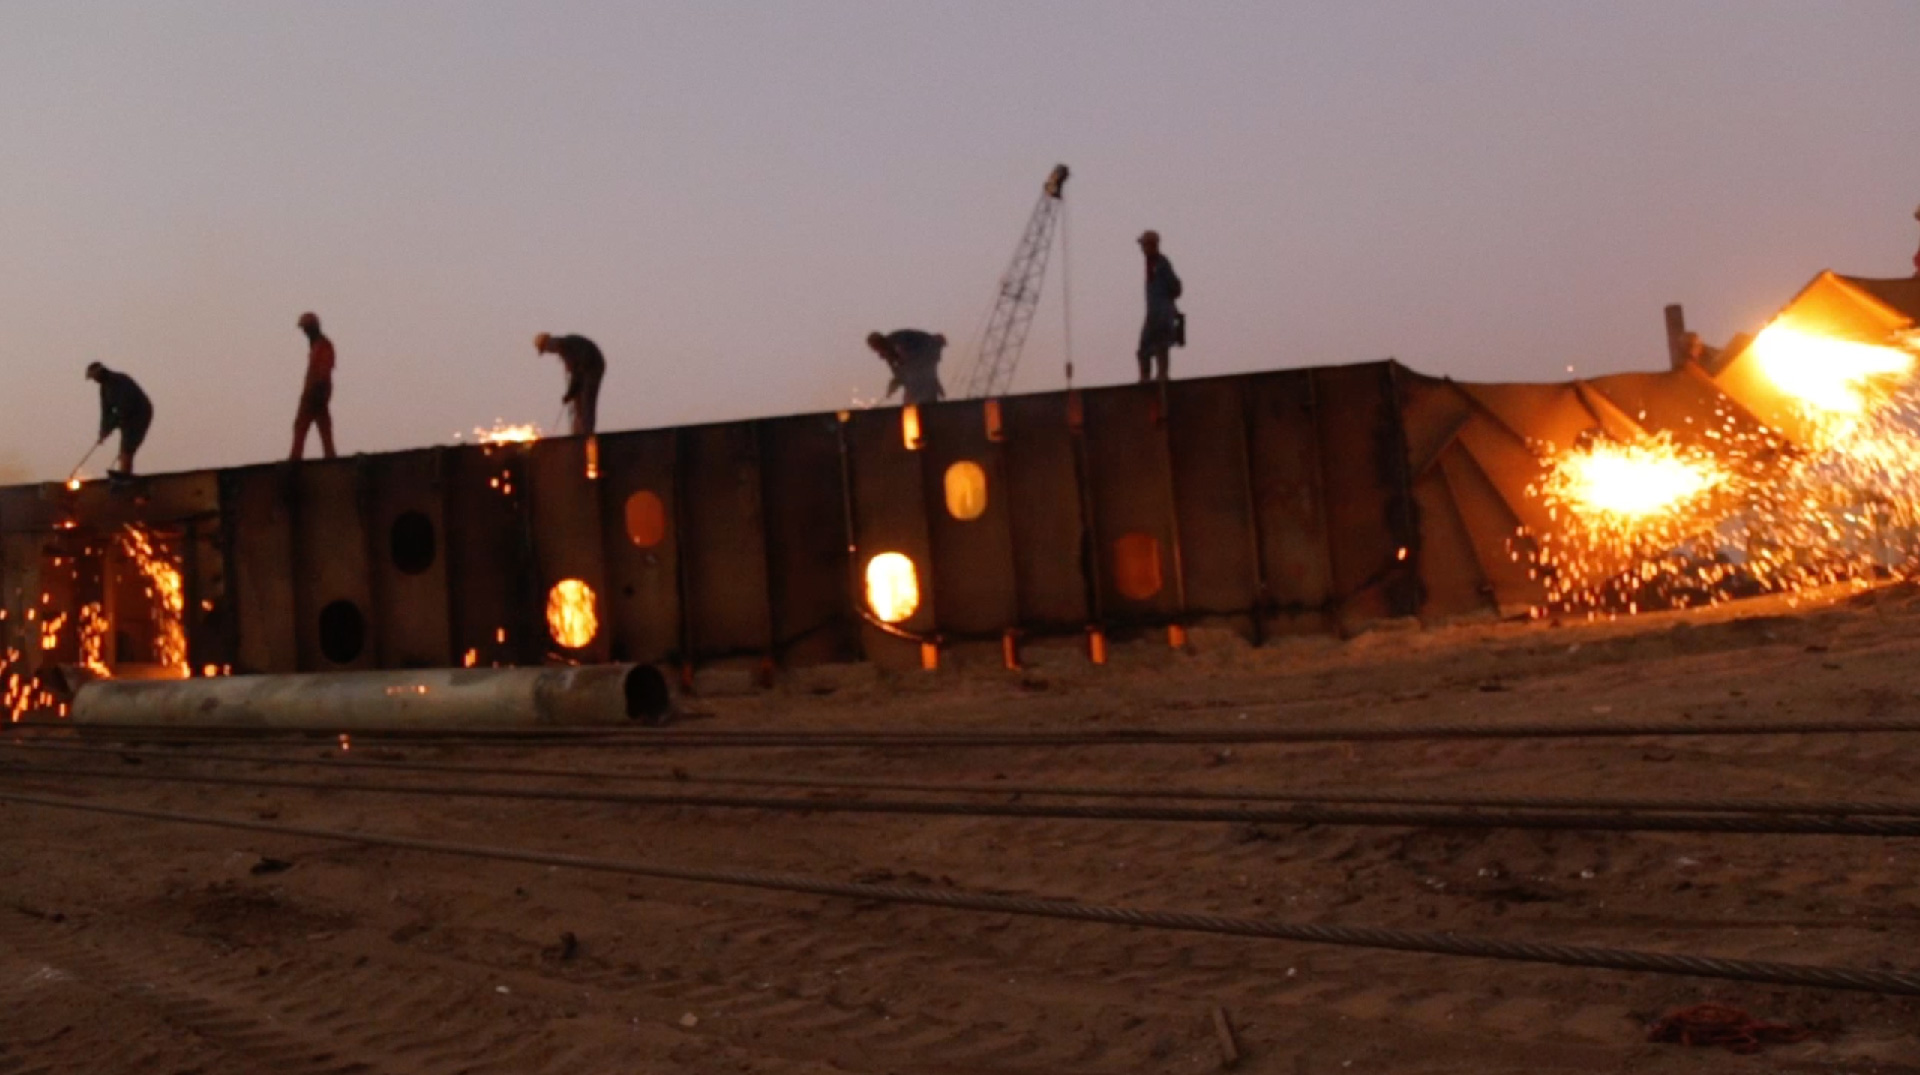 In this short documentary, 'Ocean Master' a container vessel is anthropomorphized, and enters into a dialogue with several workers at the Gadani yards | Hira Nabi | STIRworld